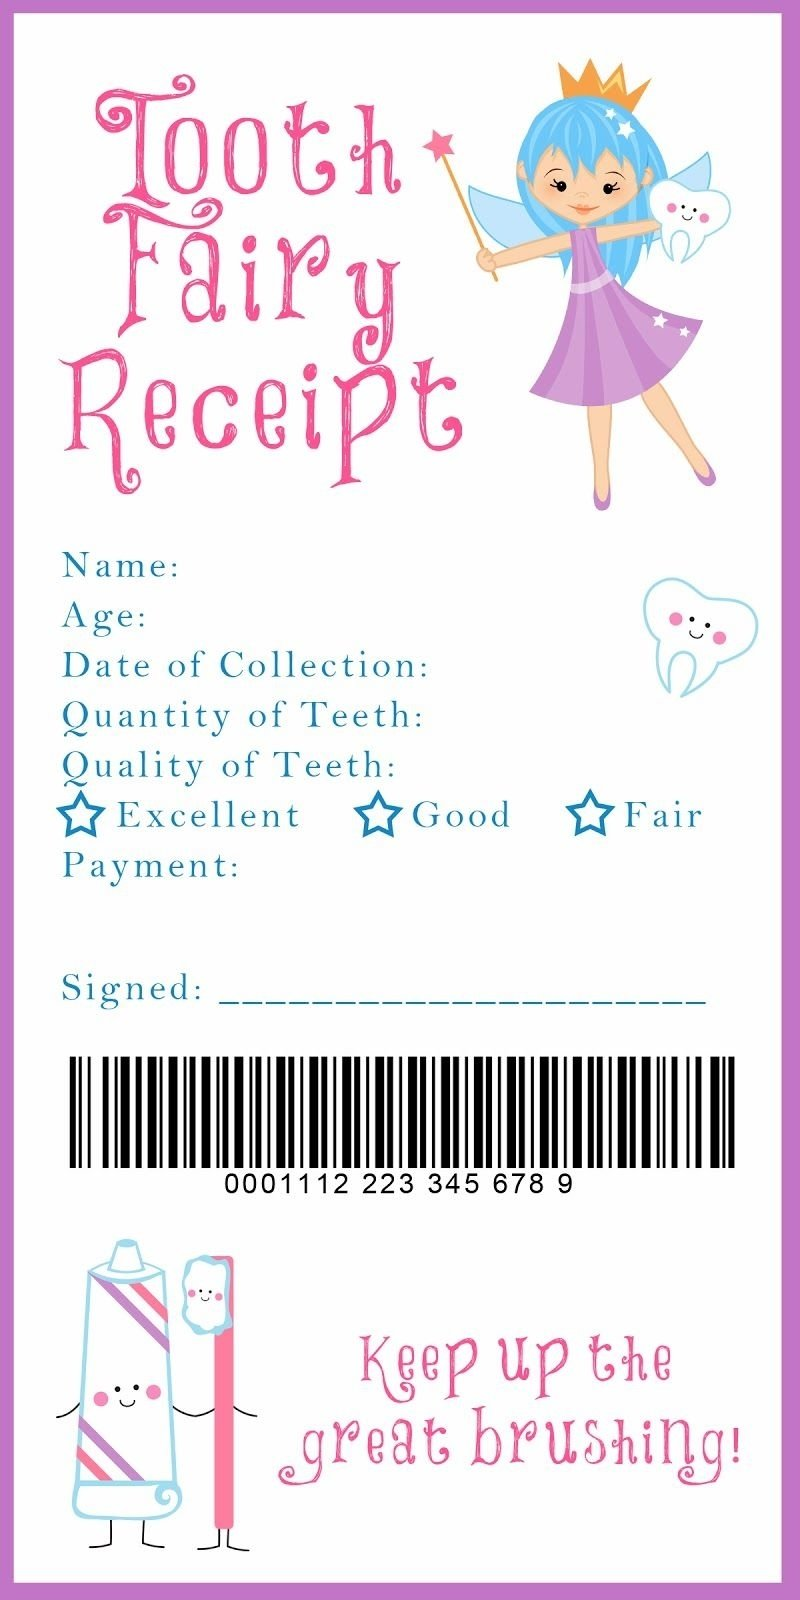 10 Elegant Tooth Fairy Ideas For First Tooth tooth fairy receipt and many other awesome printables xixi 3 2020